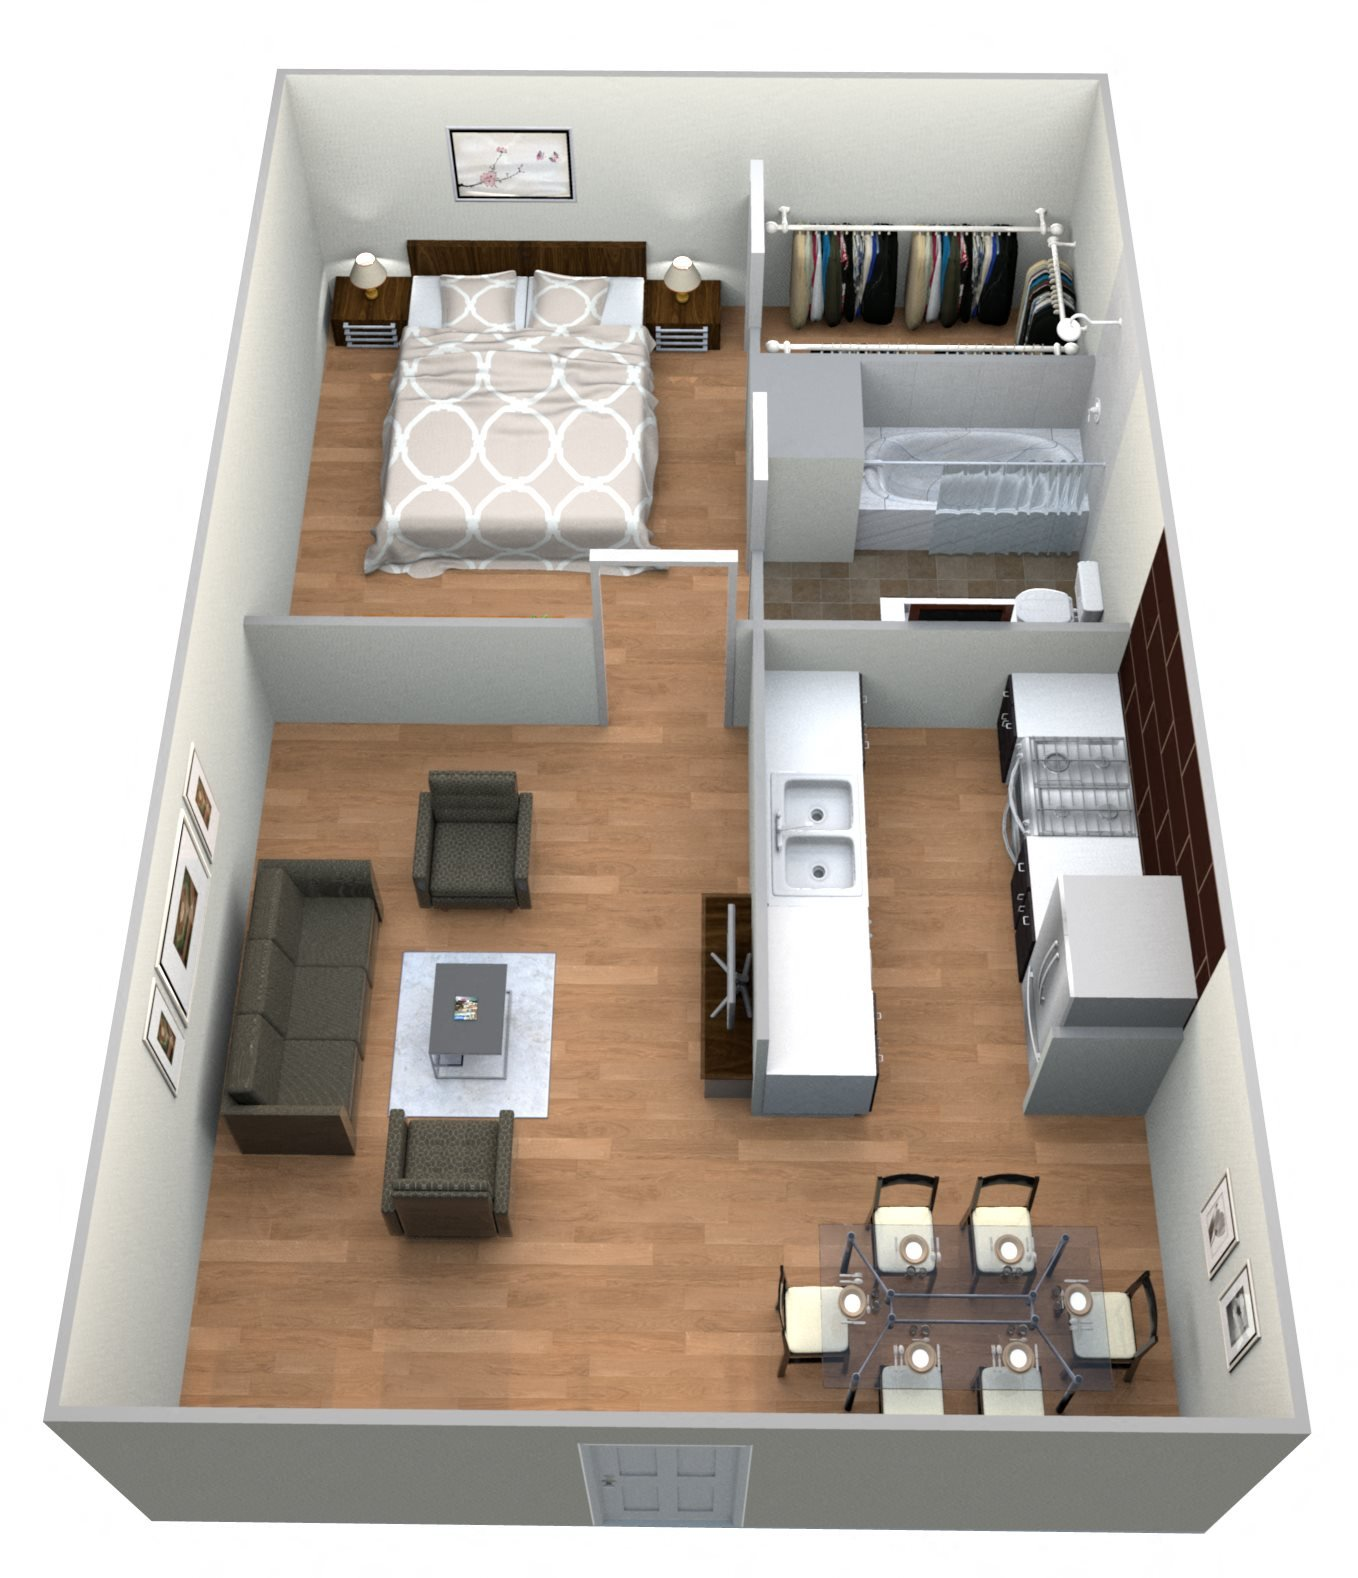 #6 Courtyard 1 Bedroom w 1 Bath Floor Plan 14